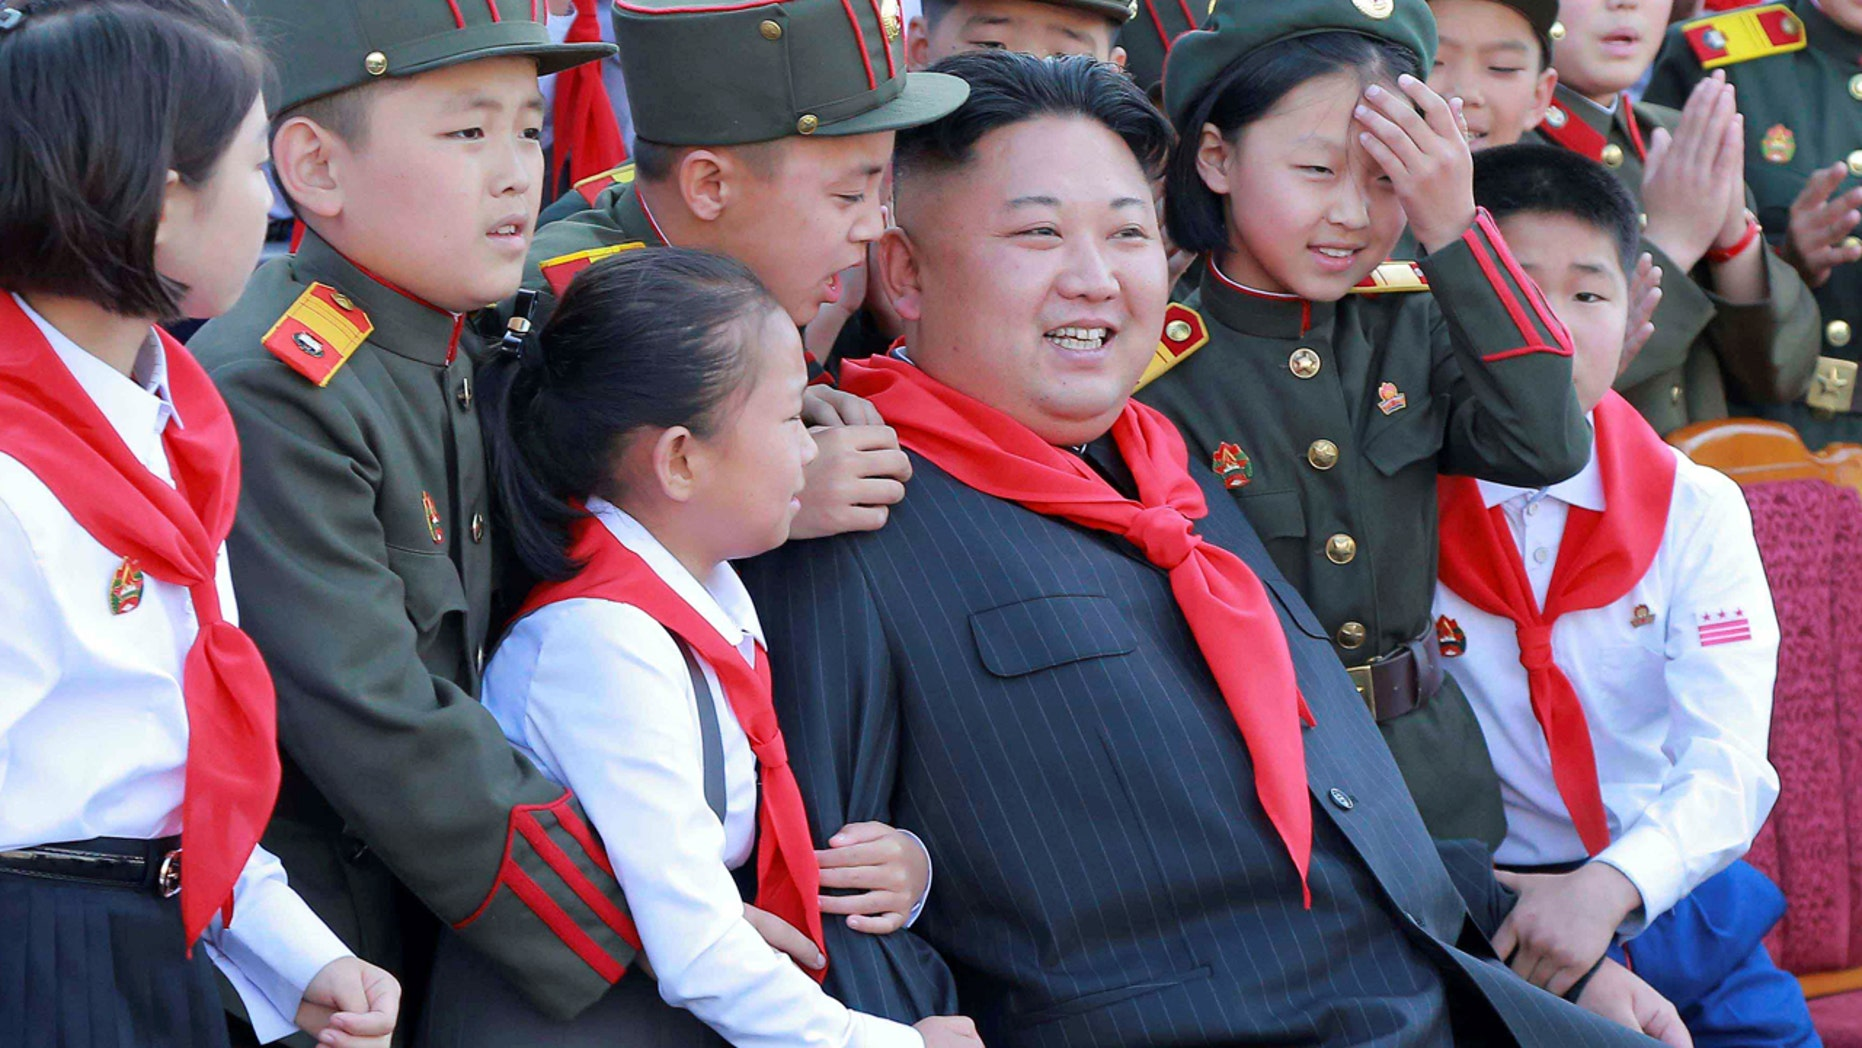 North Korean leader Kim Jong Un poses with participants during the 8th Congress of the Korean Children's Union